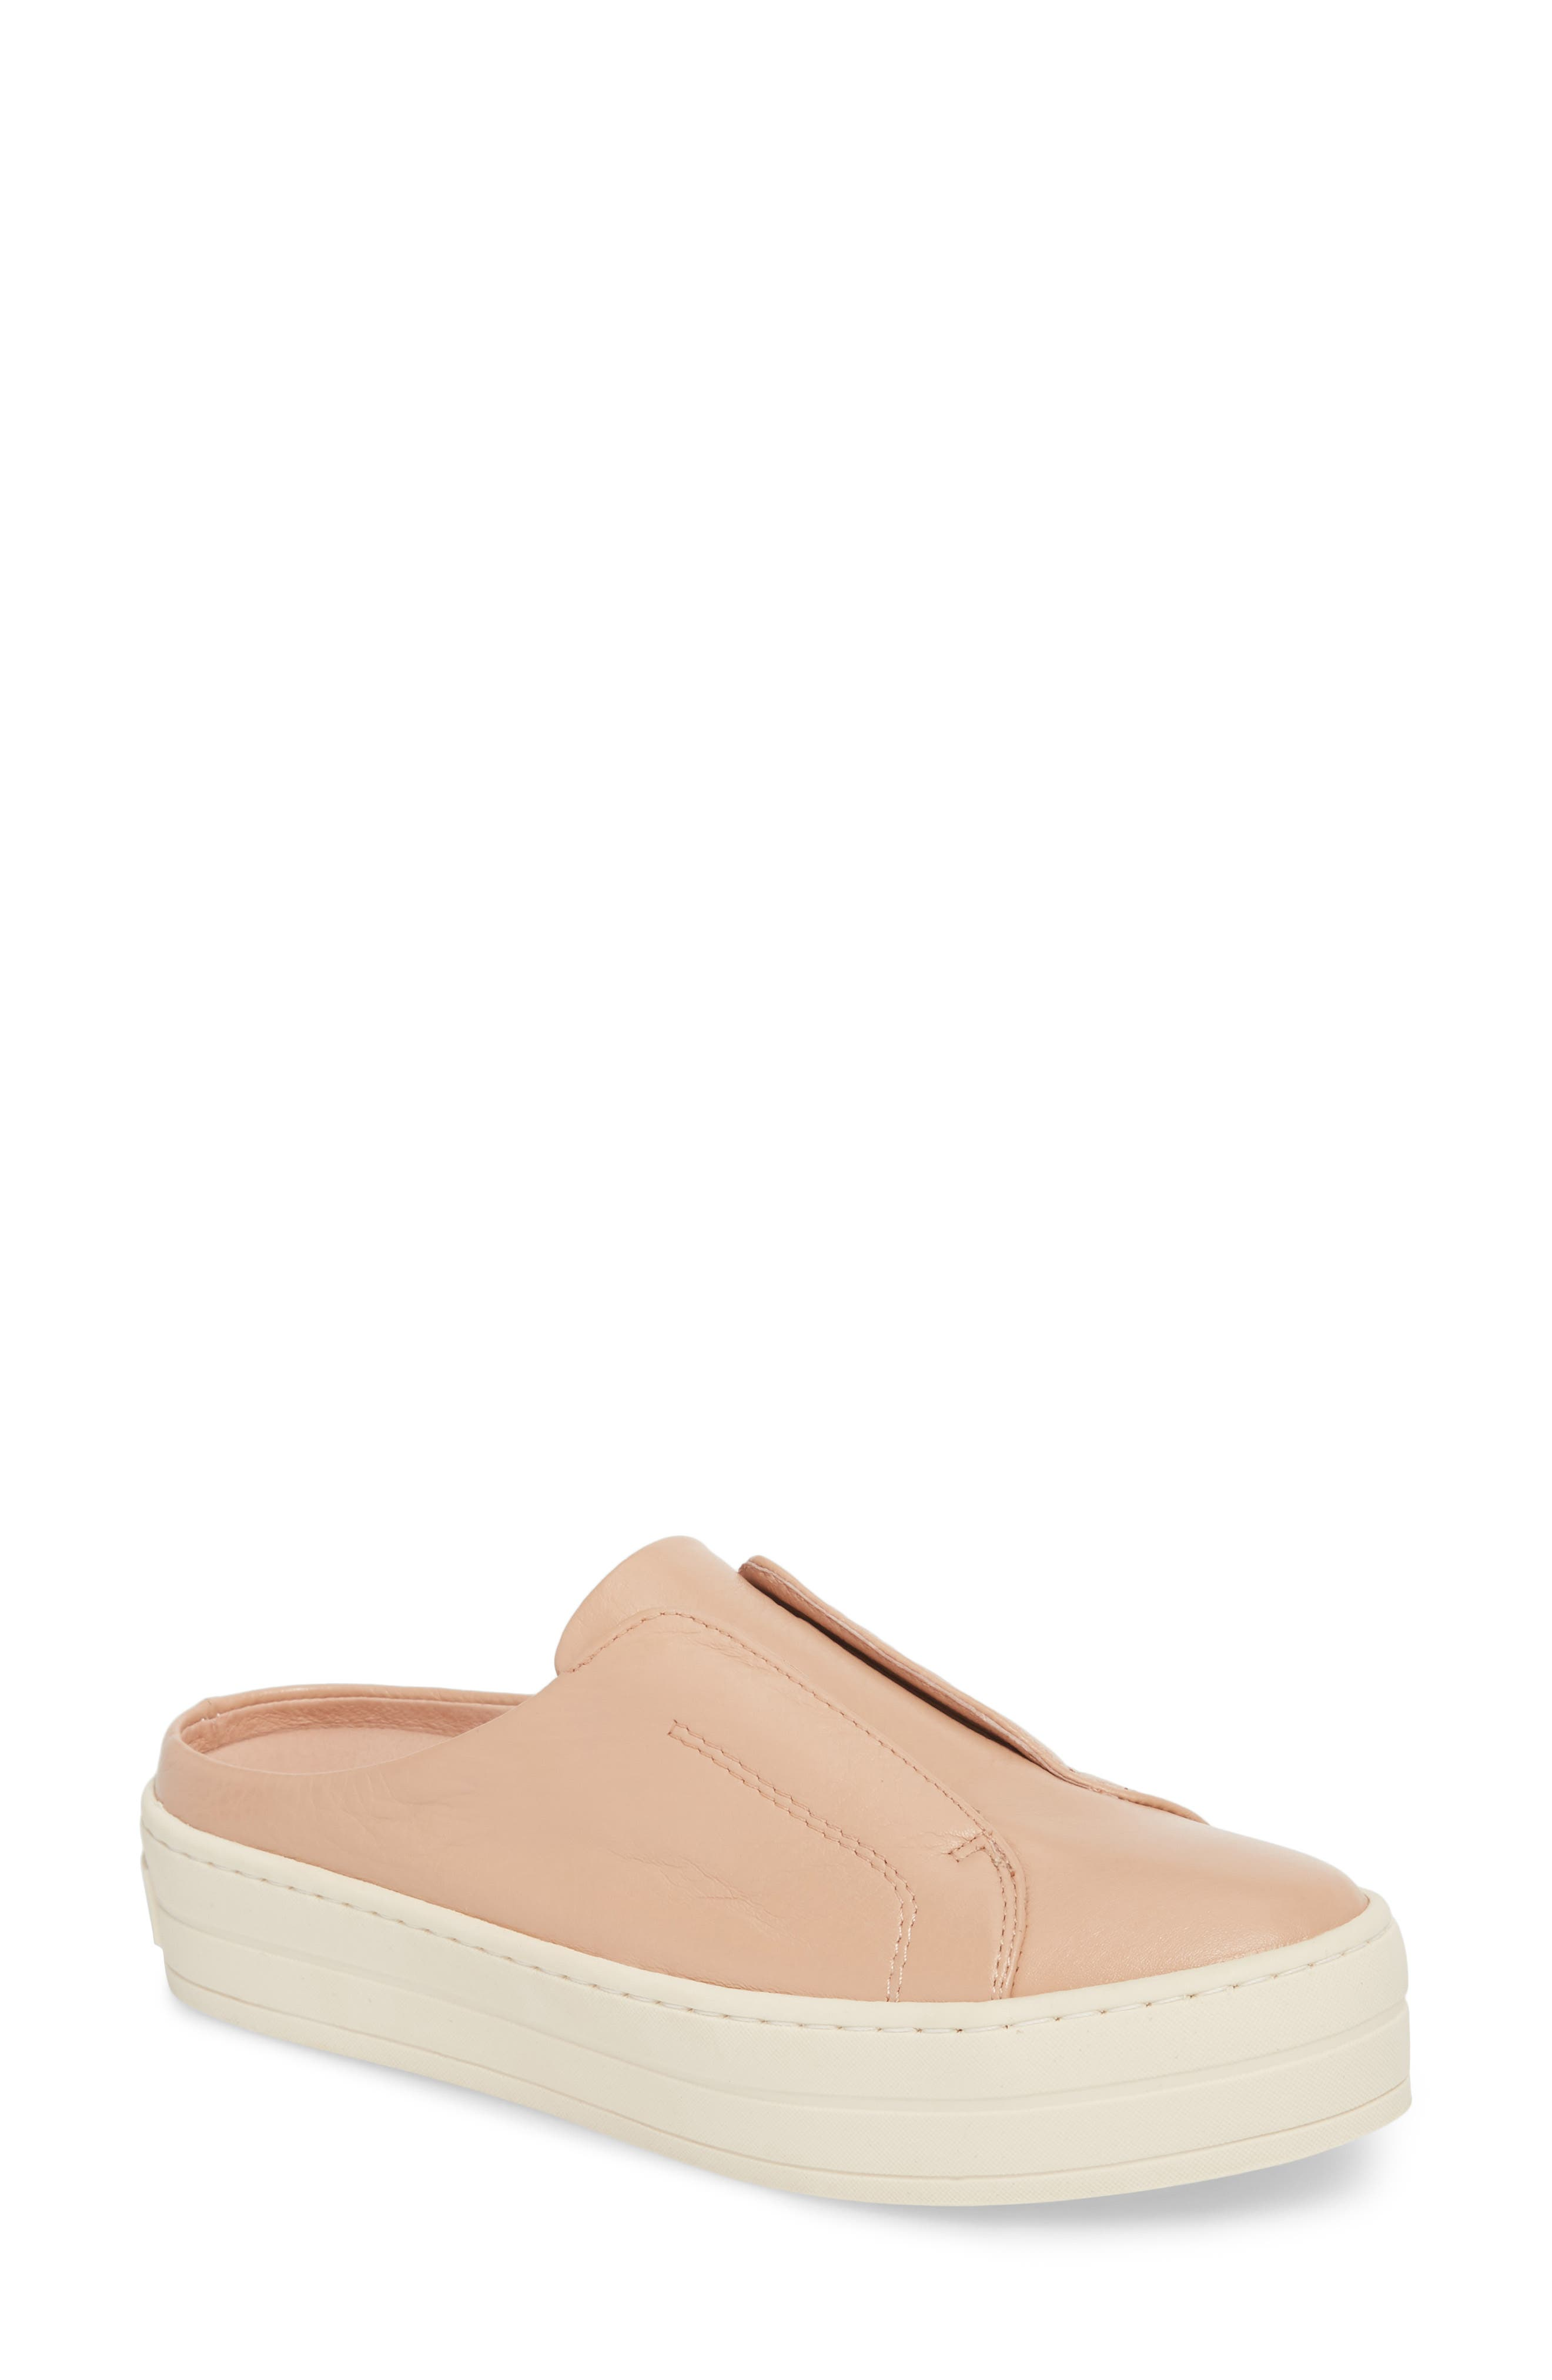 Hara Sneaker Mule,                             Main thumbnail 1, color,                             BLUSH SUEDE